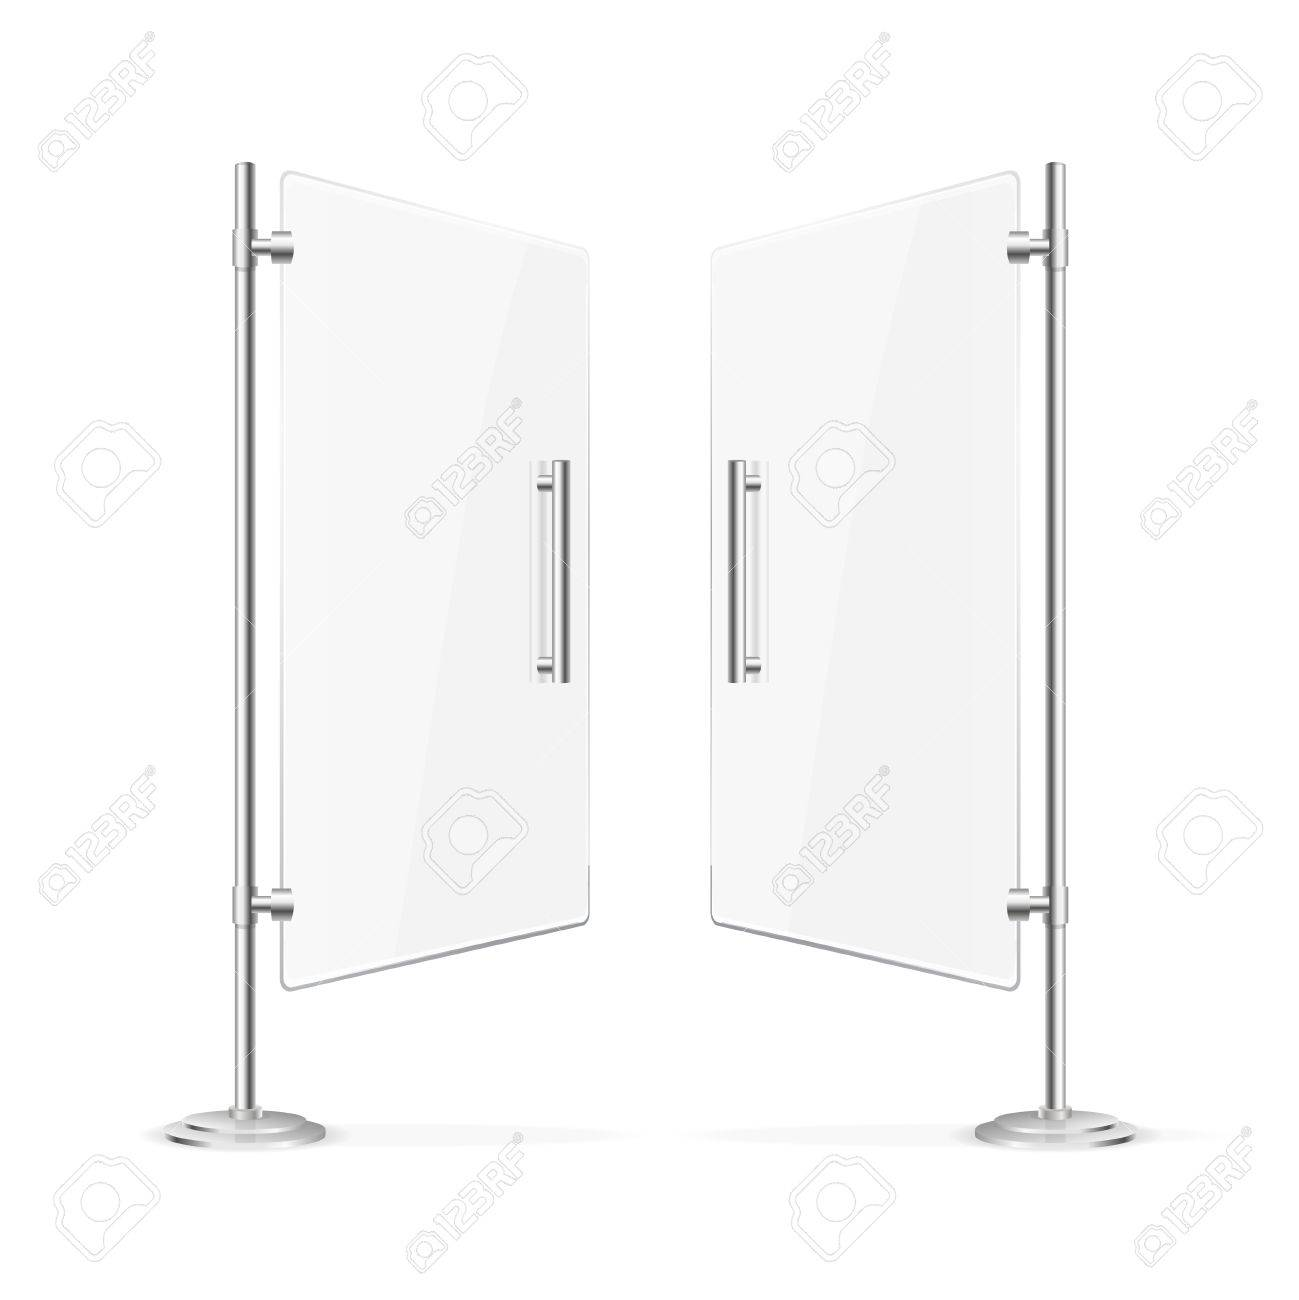 Transparent glass door open with steel handles vector illustration transparent glass door open with steel handles vector illustration stock vector 62205839 planetlyrics Image collections